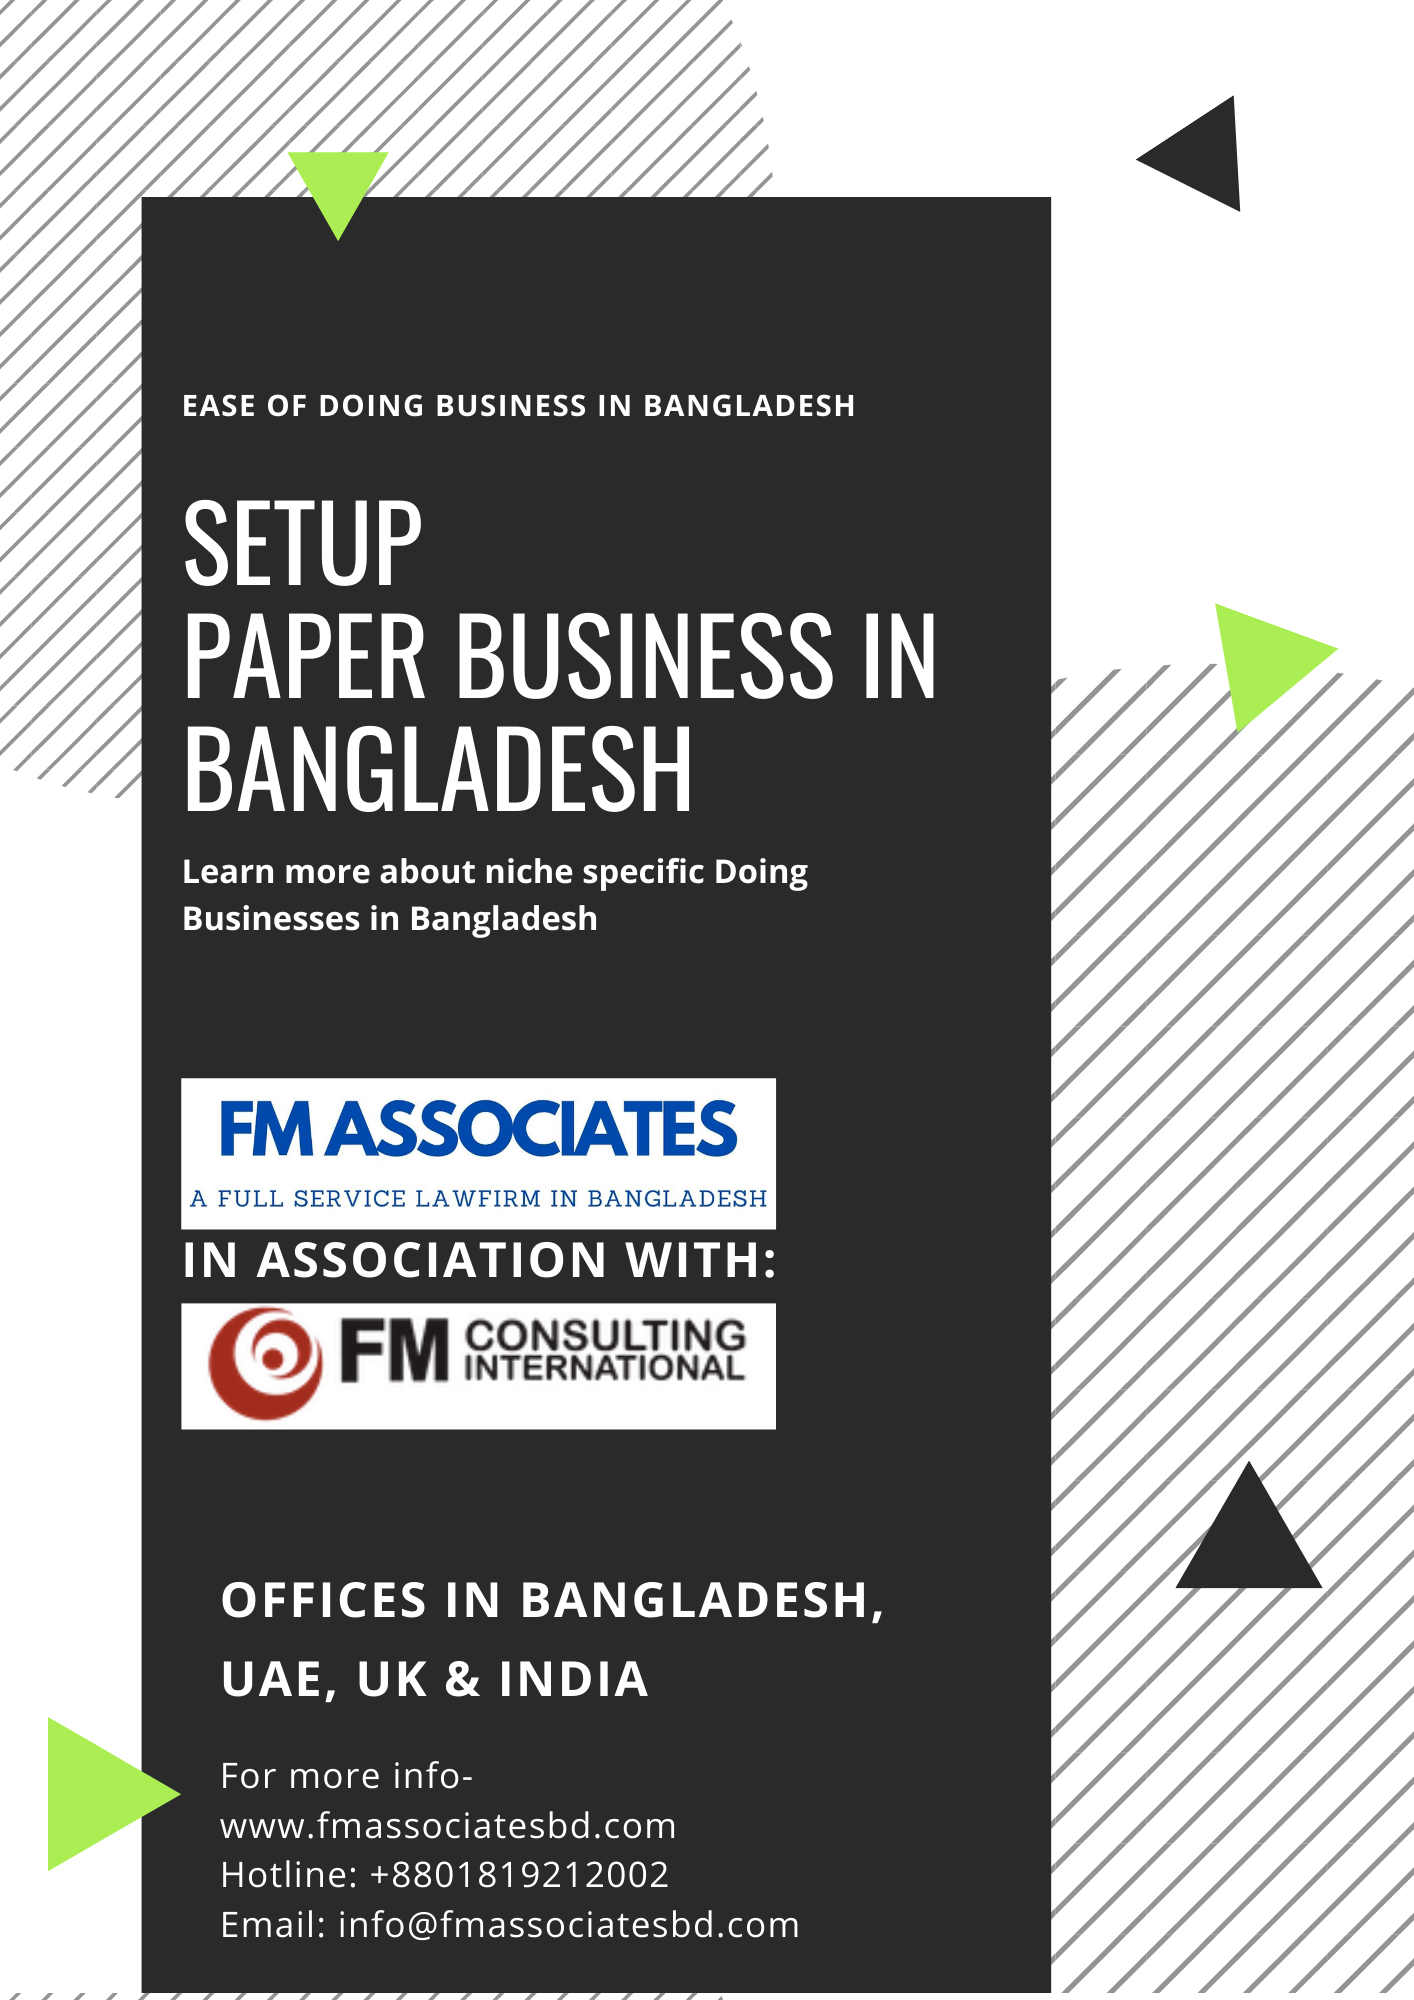 How to Setup Paper Business in Bangladesh